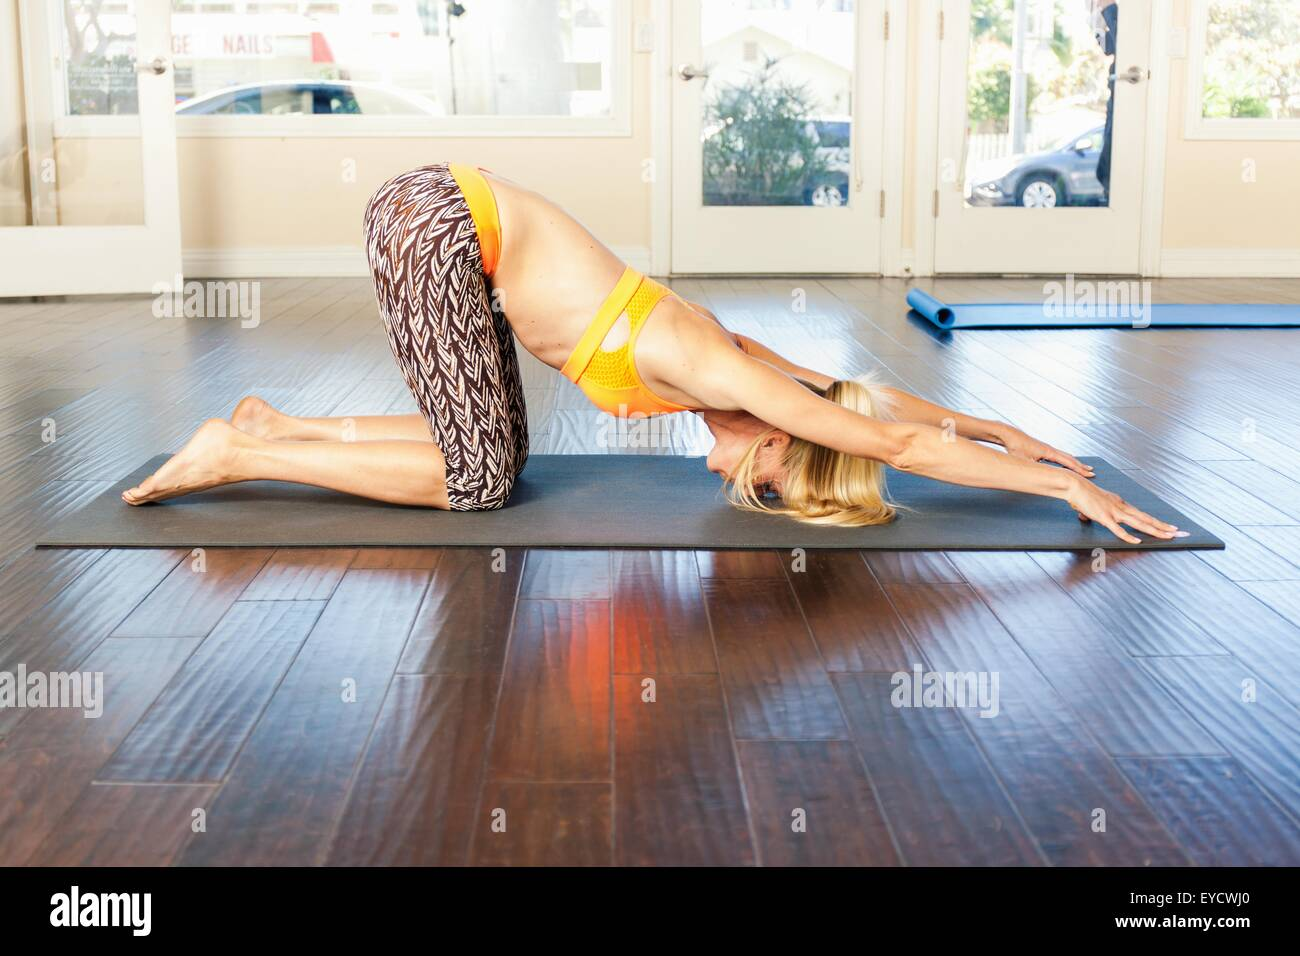 Mid adult woman in yoga pose Photo Stock